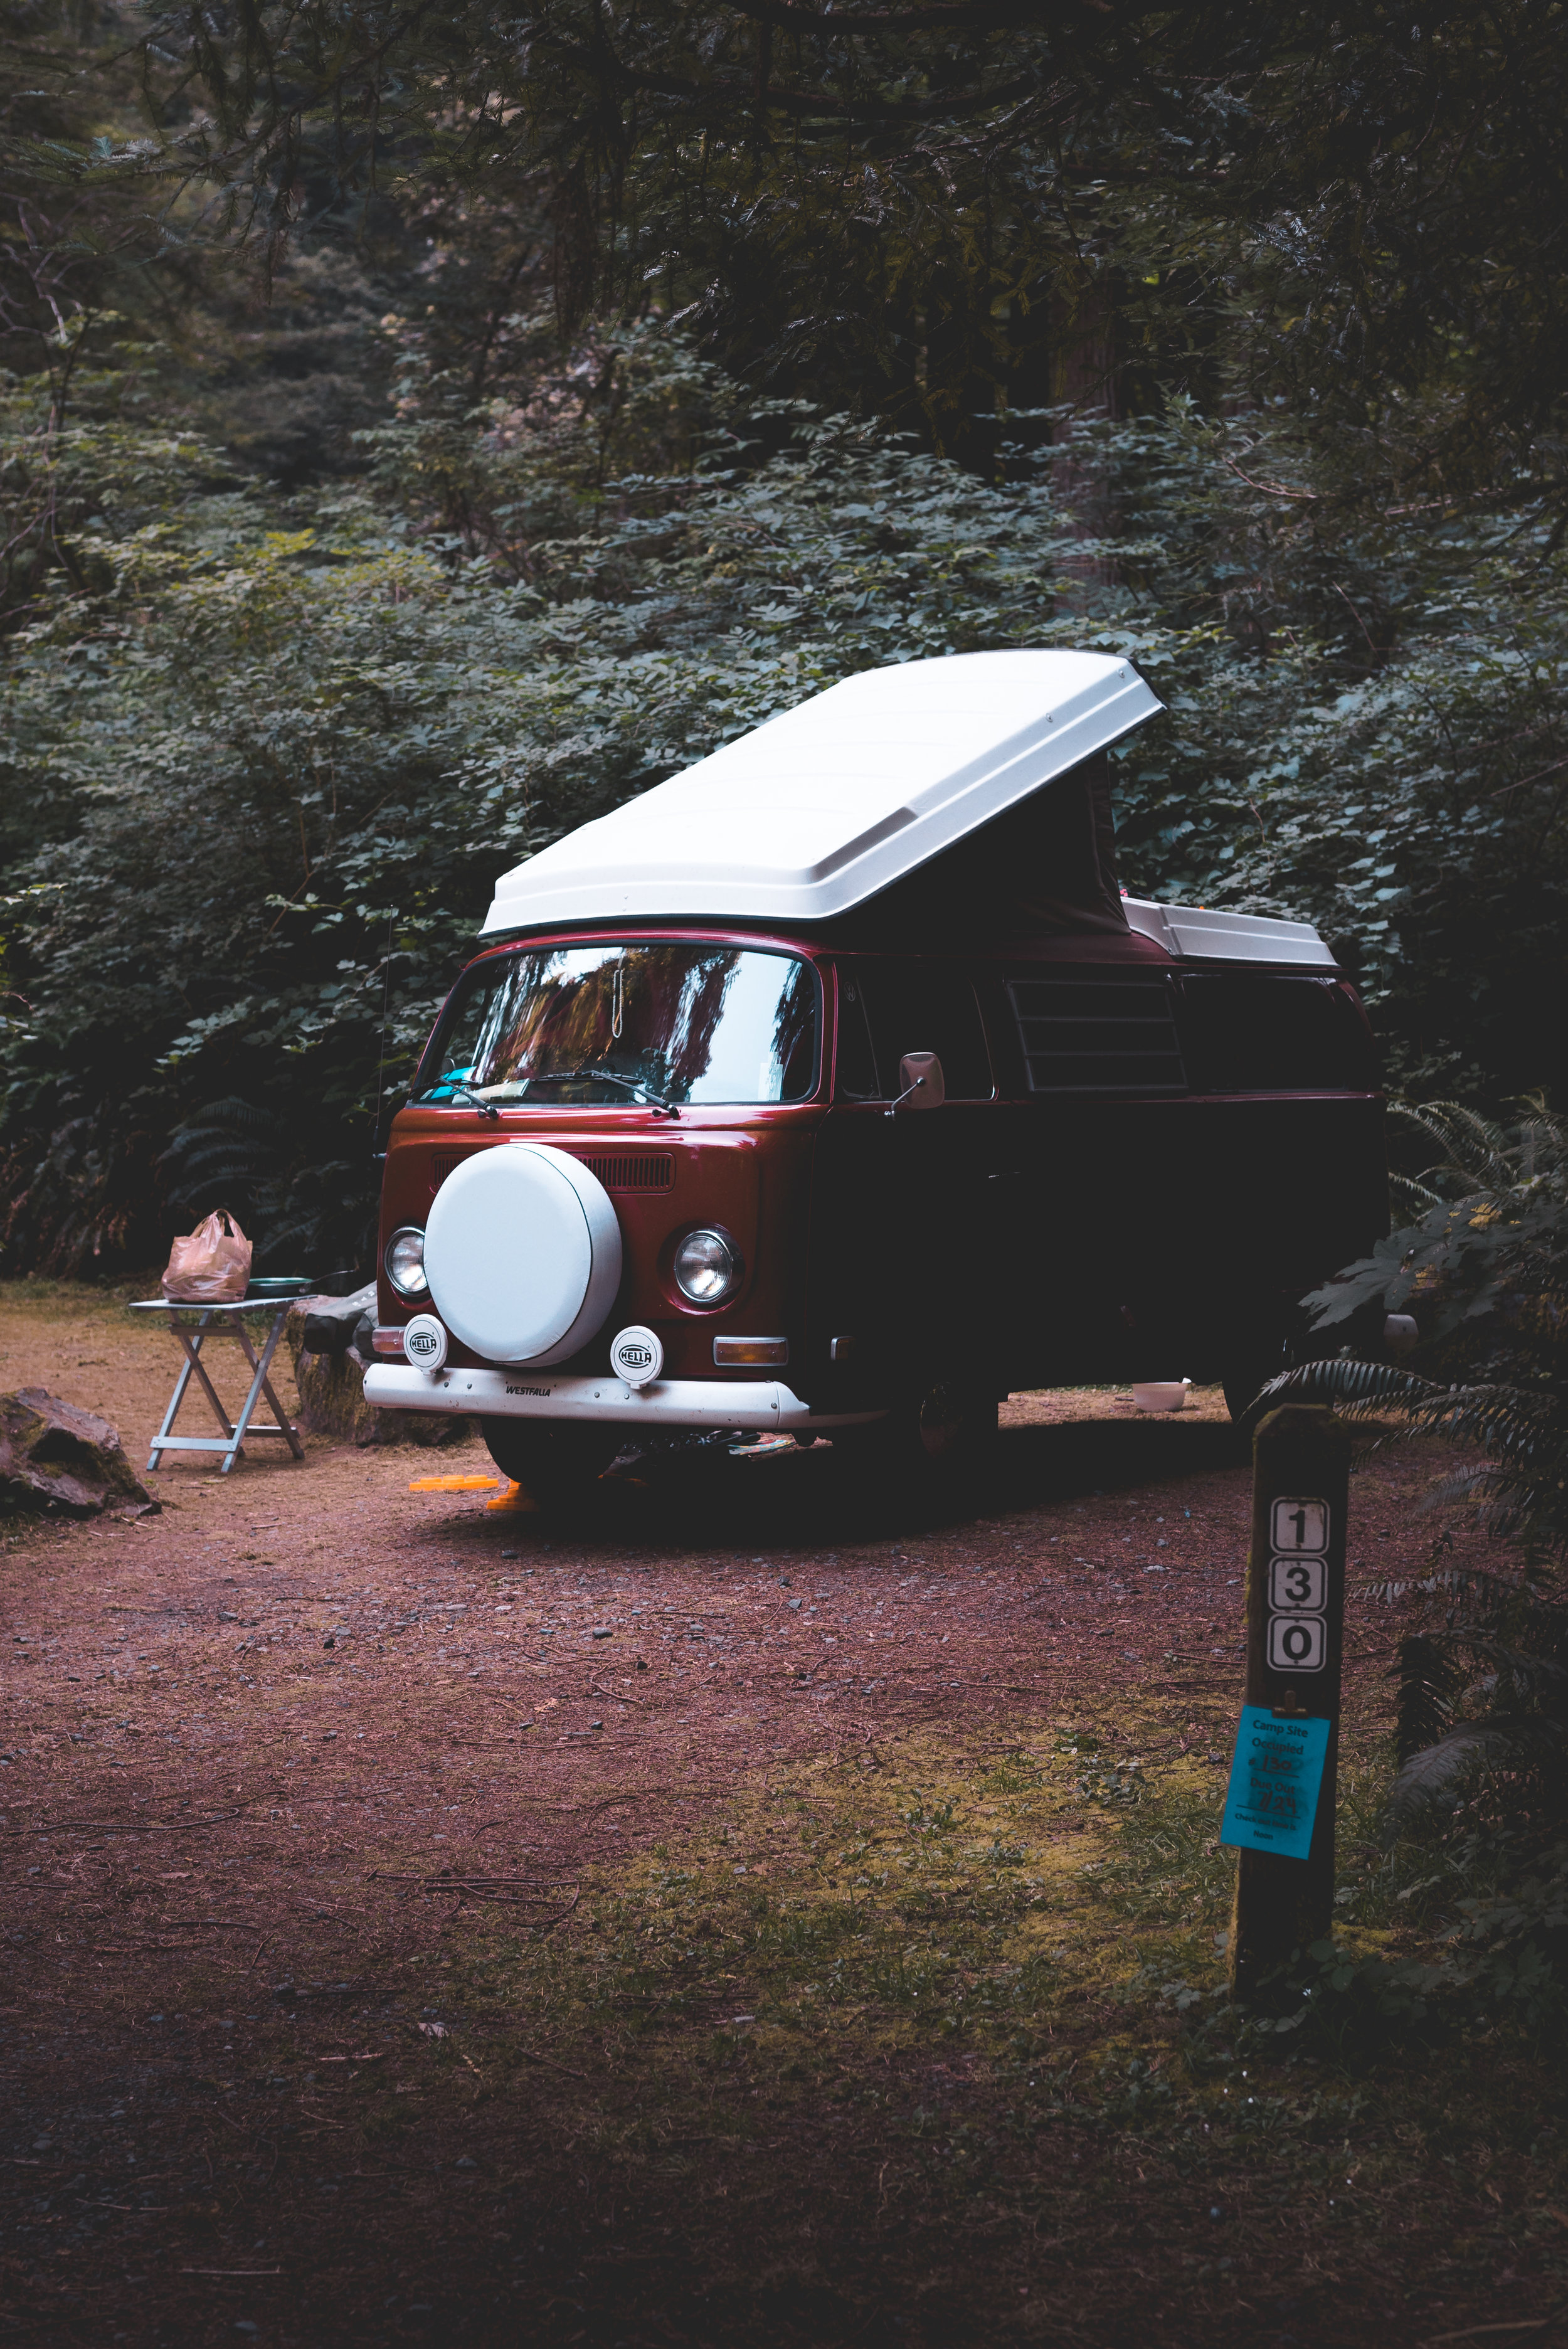 VW van at the Del Norte campground in the Redwoods. ISO 640, f/4, 1/160